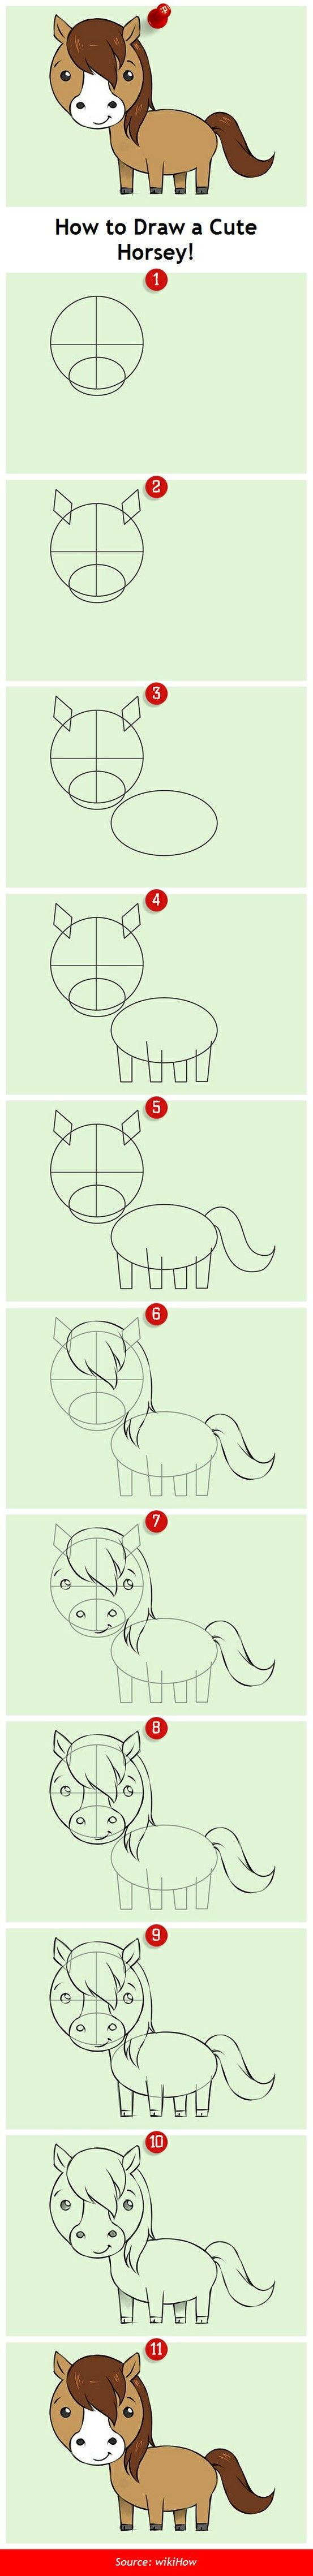 best passo a passo images on pinterest drawing ideas how to